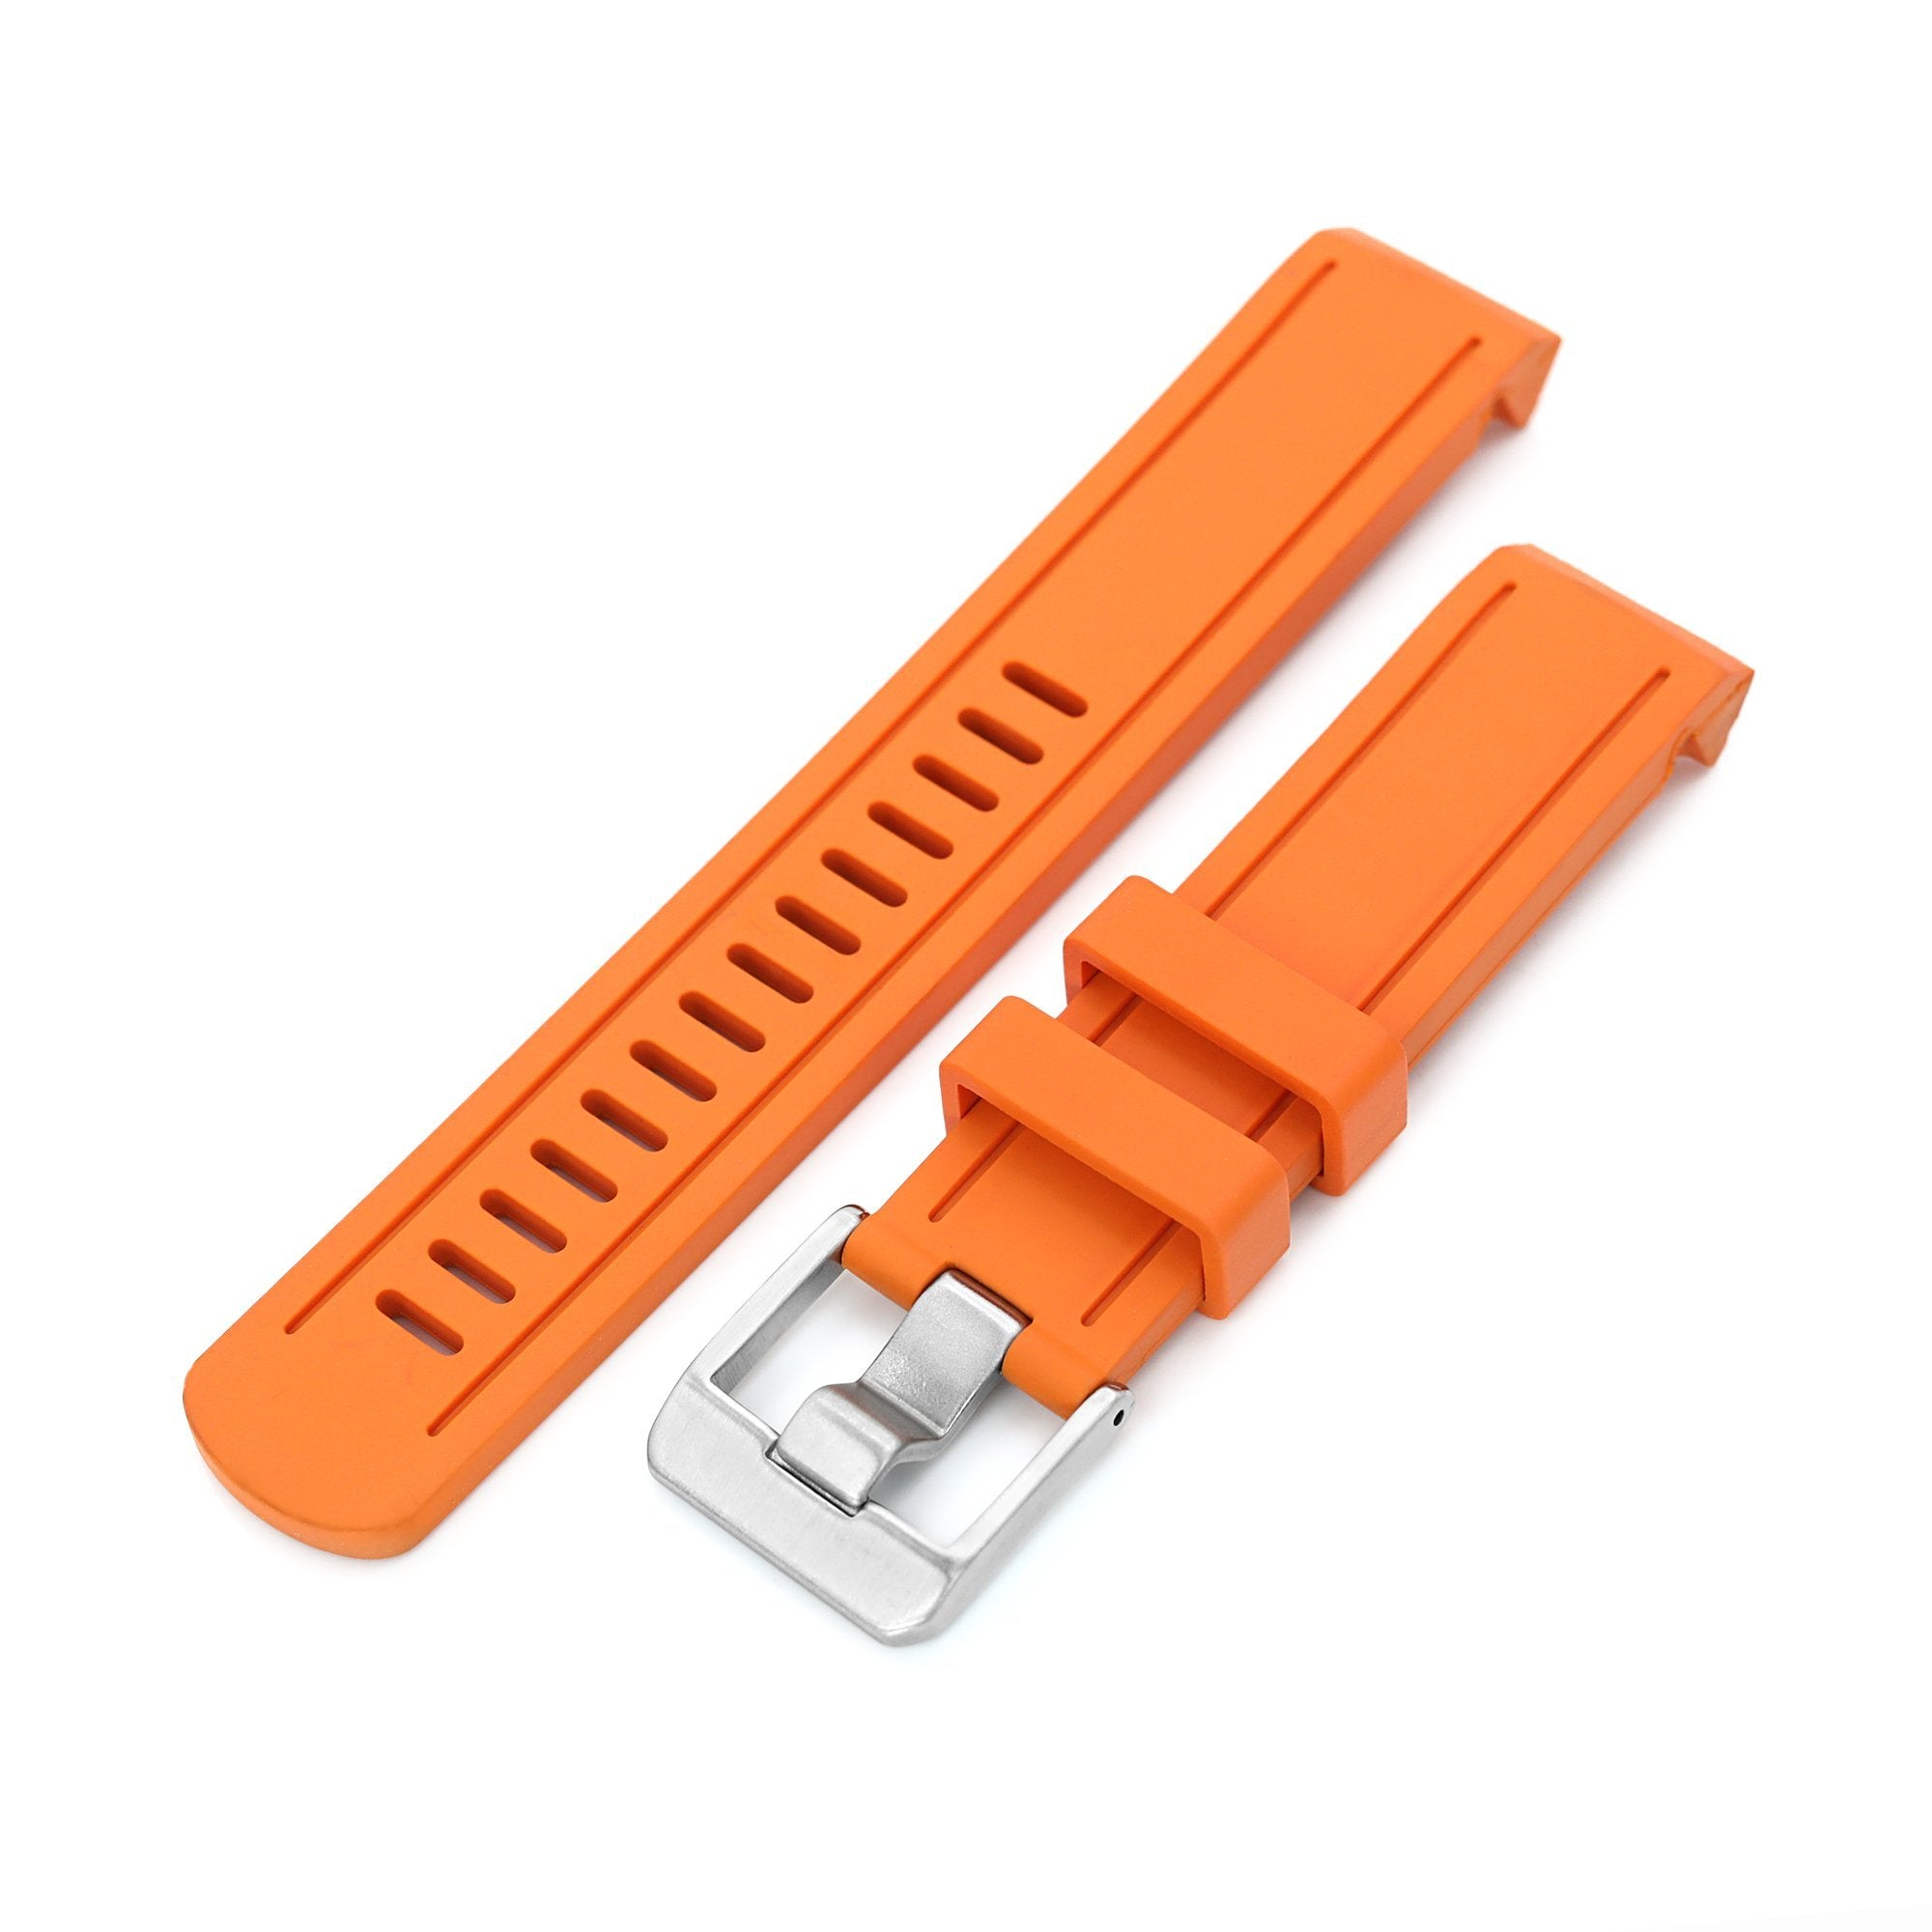 20mm Crafter Blue Orange Rubber Curved Lug Watch Band for Seiko Sumo SBDC001 Strapcode Watch Bands